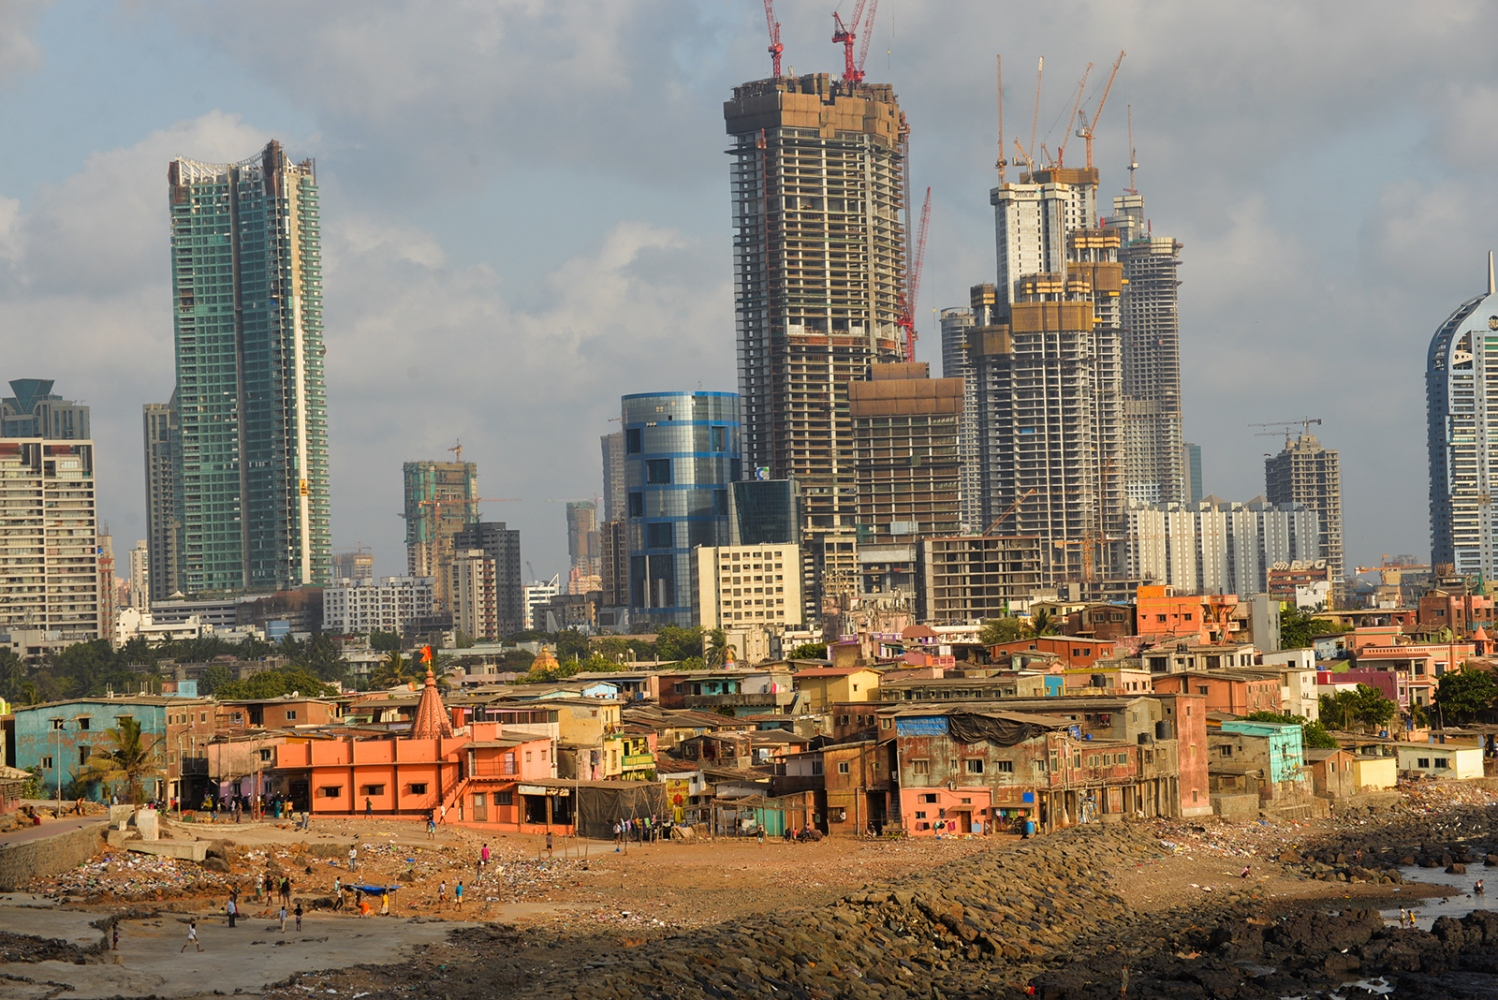 Worli fishing village surrounded by high-rise construction. Mumbai, India.